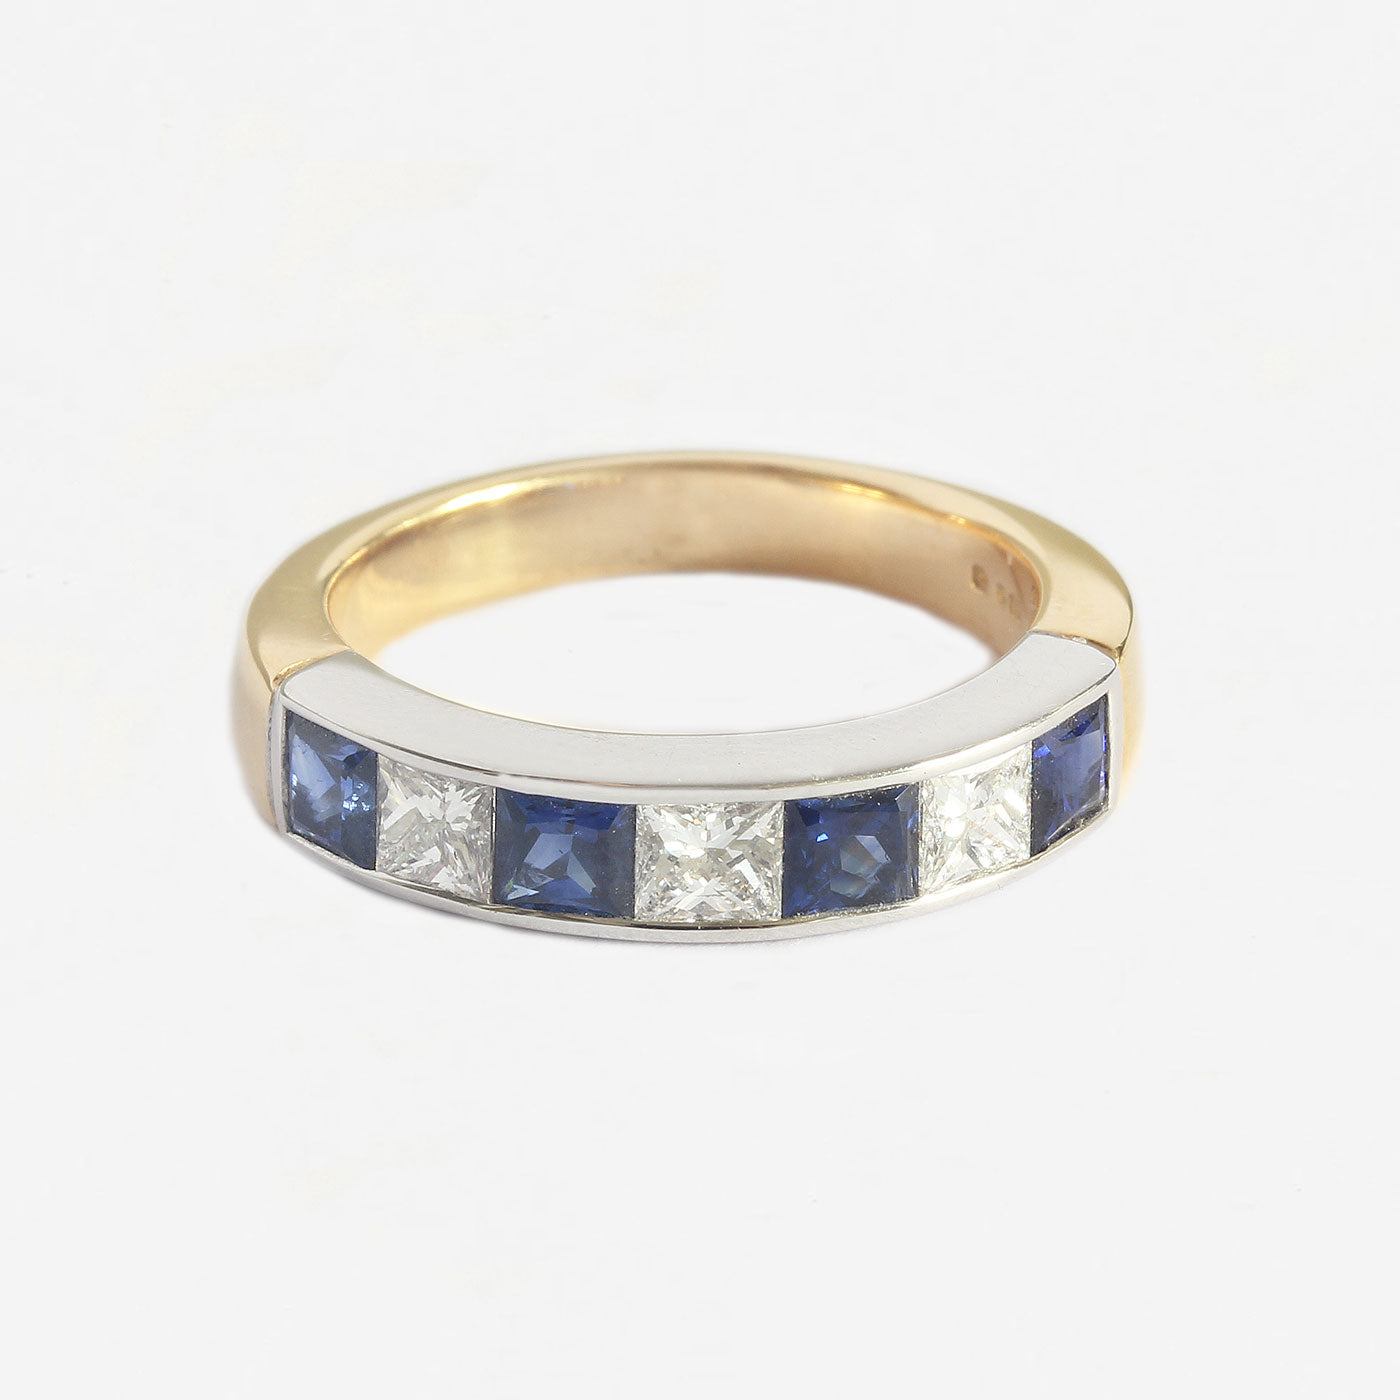 a sapphire and diamond 7 stone eternity ring square stones